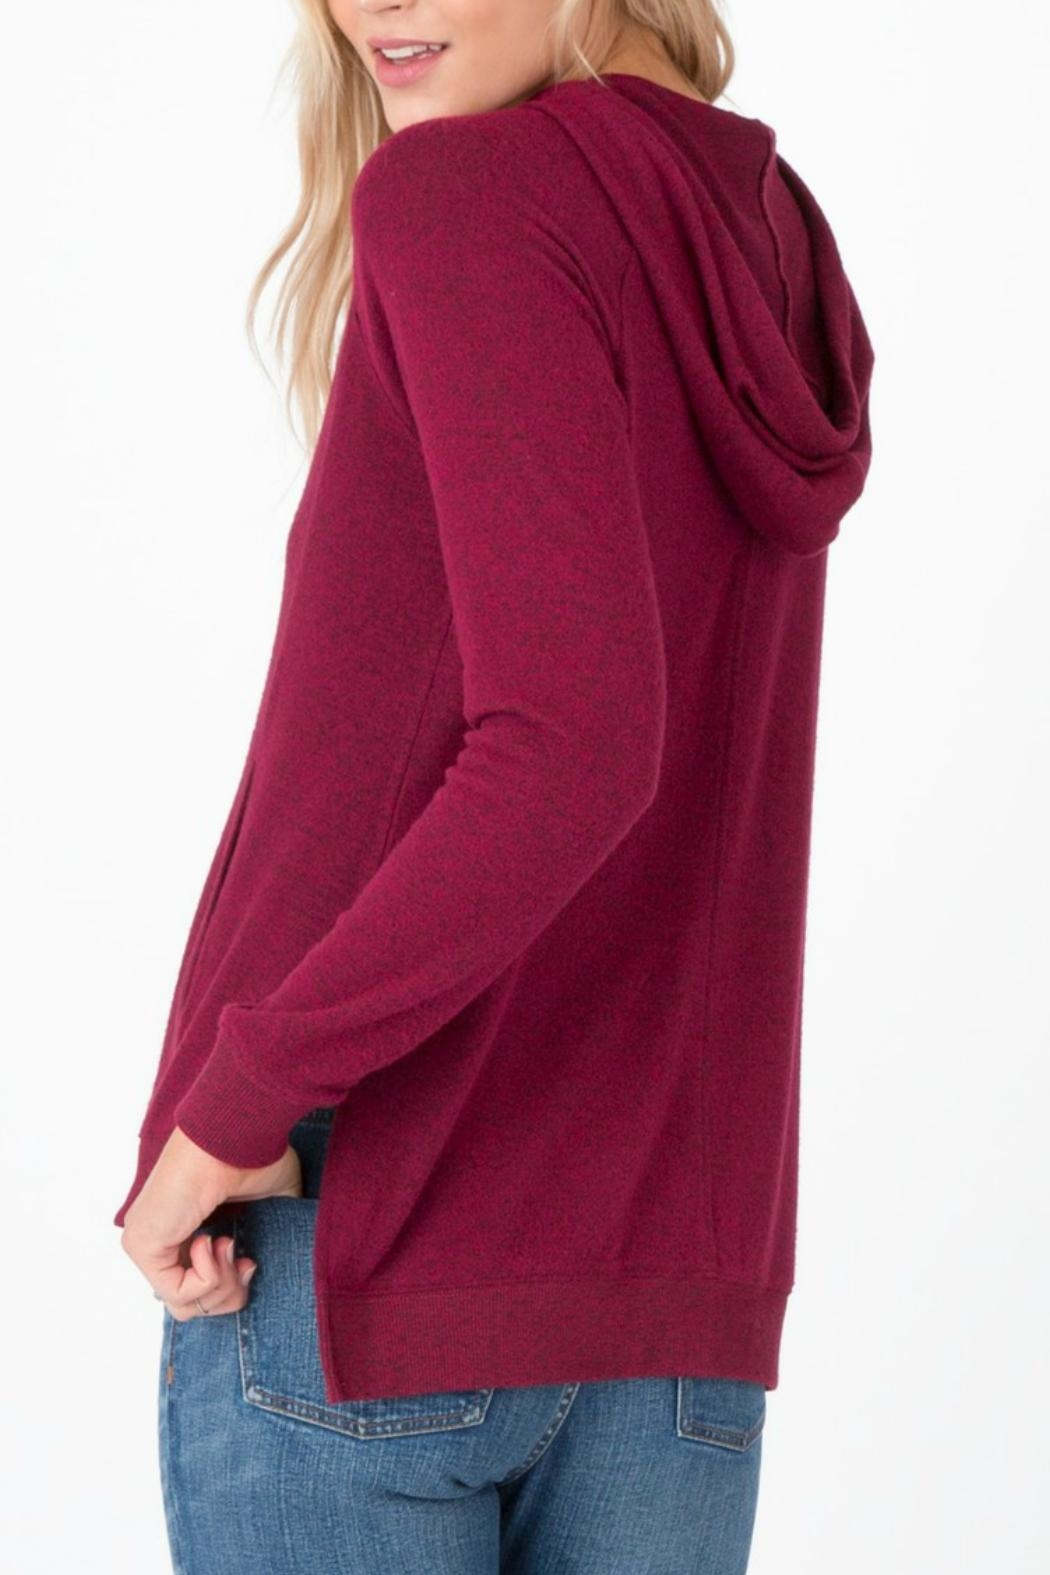 z supply Marled Pullover Cardigan - Front Full Image